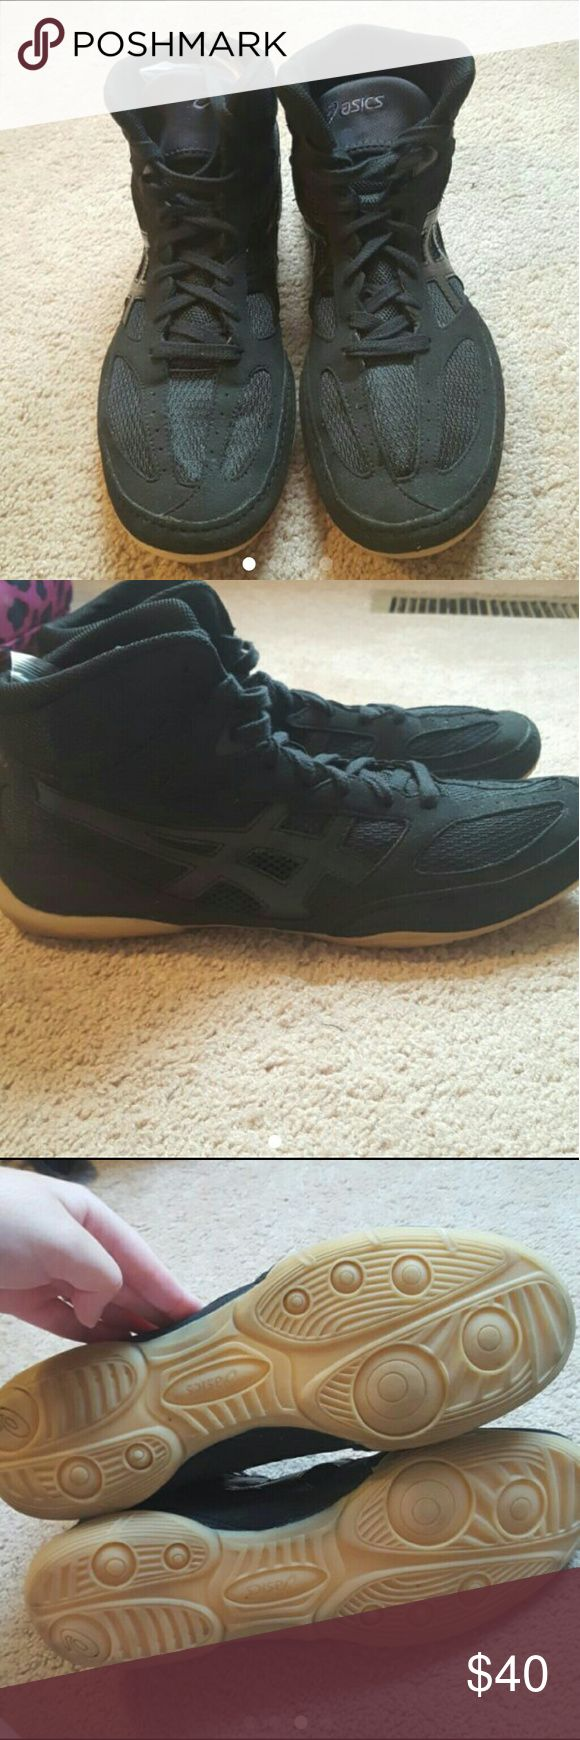 Men's Wrestling Shoes NWT! Black ASICS wrestling shoes, never been worn. Come with box & extra shoe laces shown in 4th picture. Asics Shoes Athletic Shoes